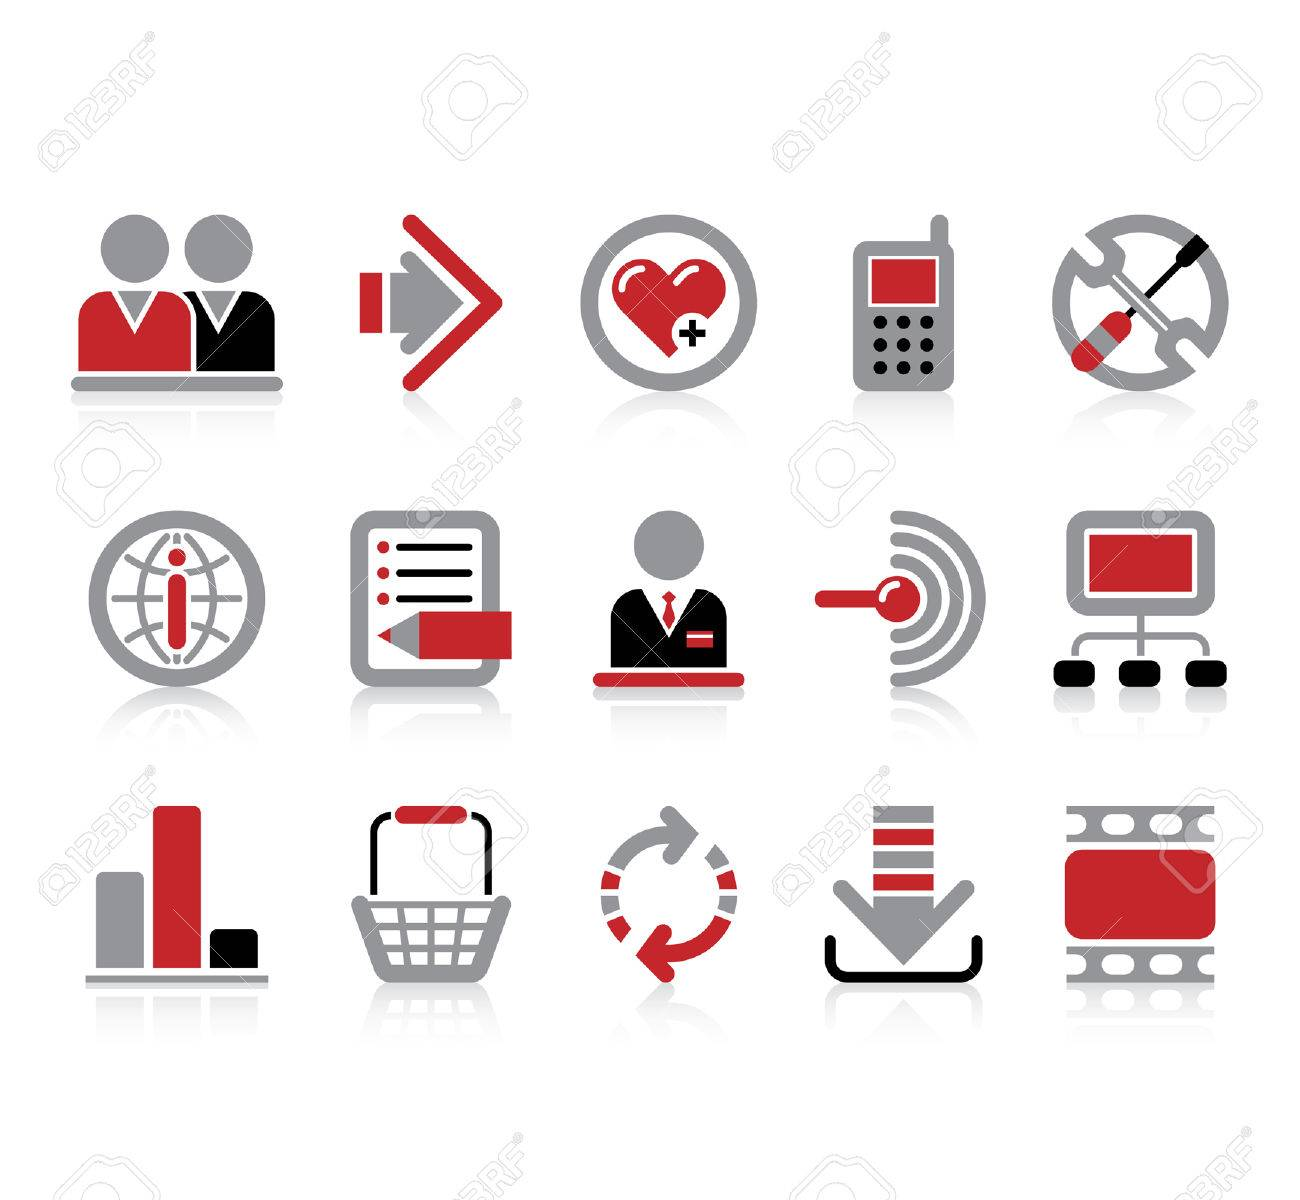 Vector website and internet iconsEasy to edit, manipulate, resize or colorize Stock Vector - 4931191